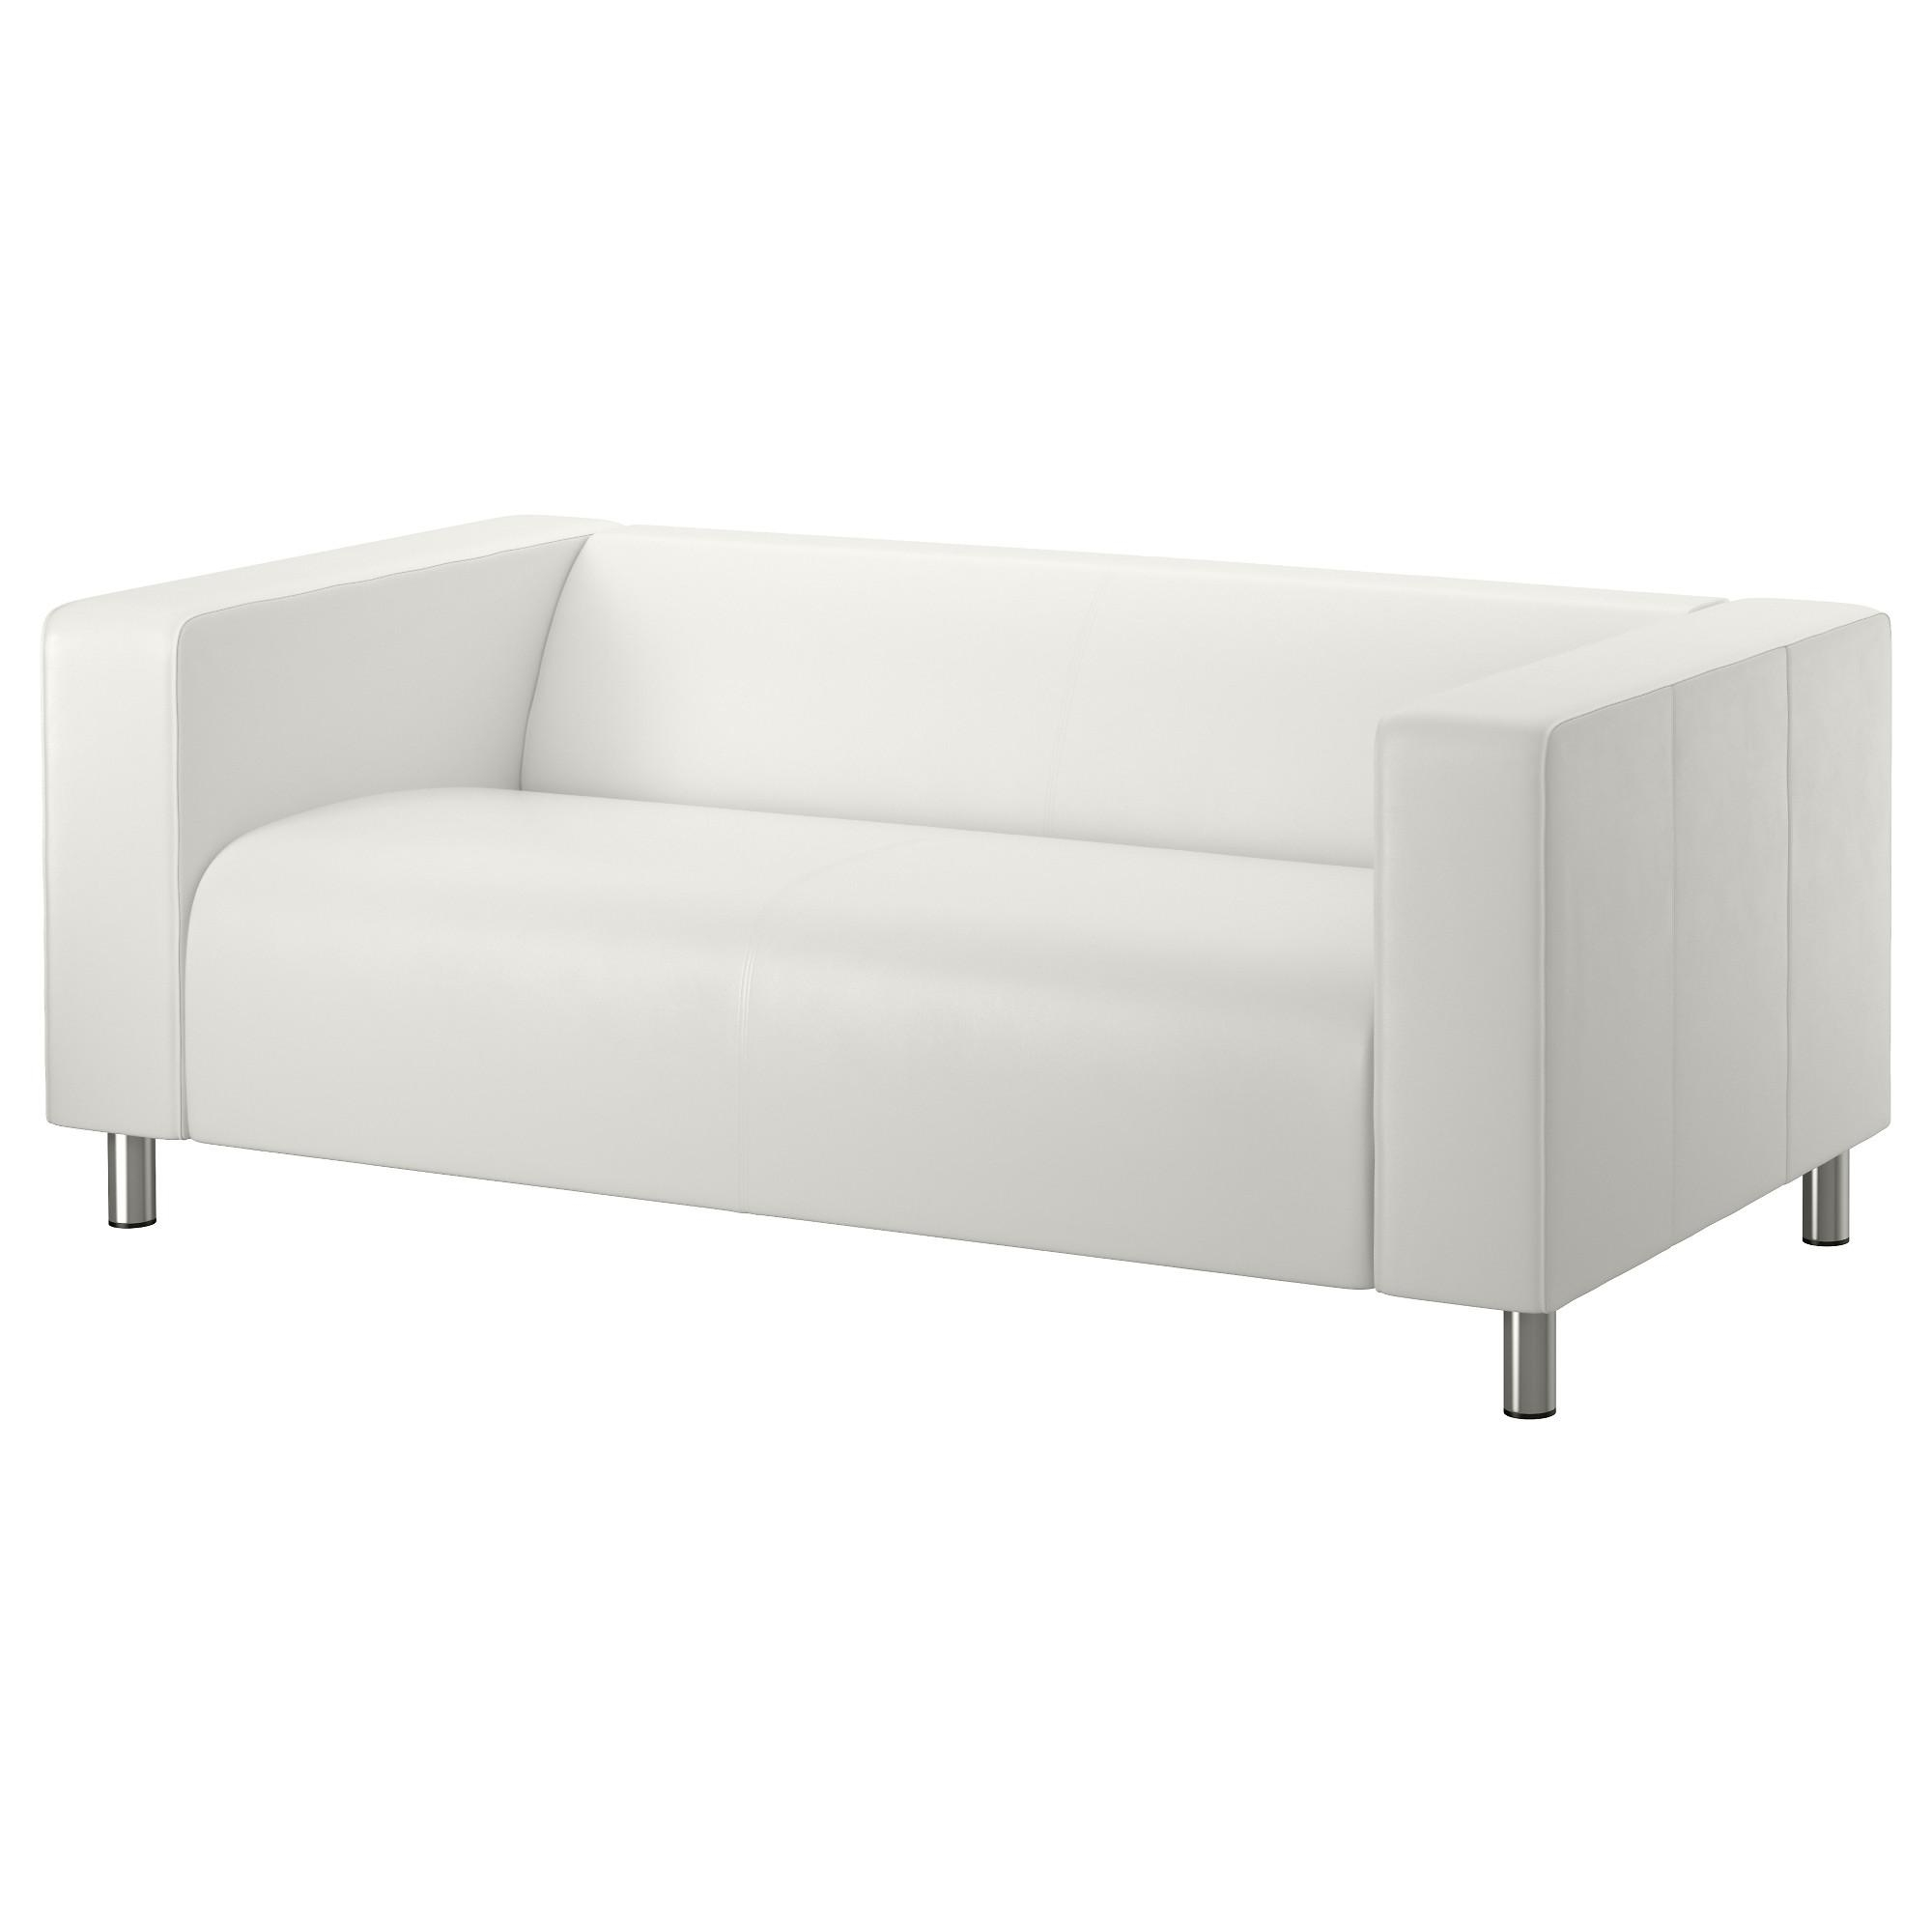 Leather & Faux Leather Couches, Chairs & Ottomans – Ikea Regarding White Sofa Chairs (View 4 of 20)